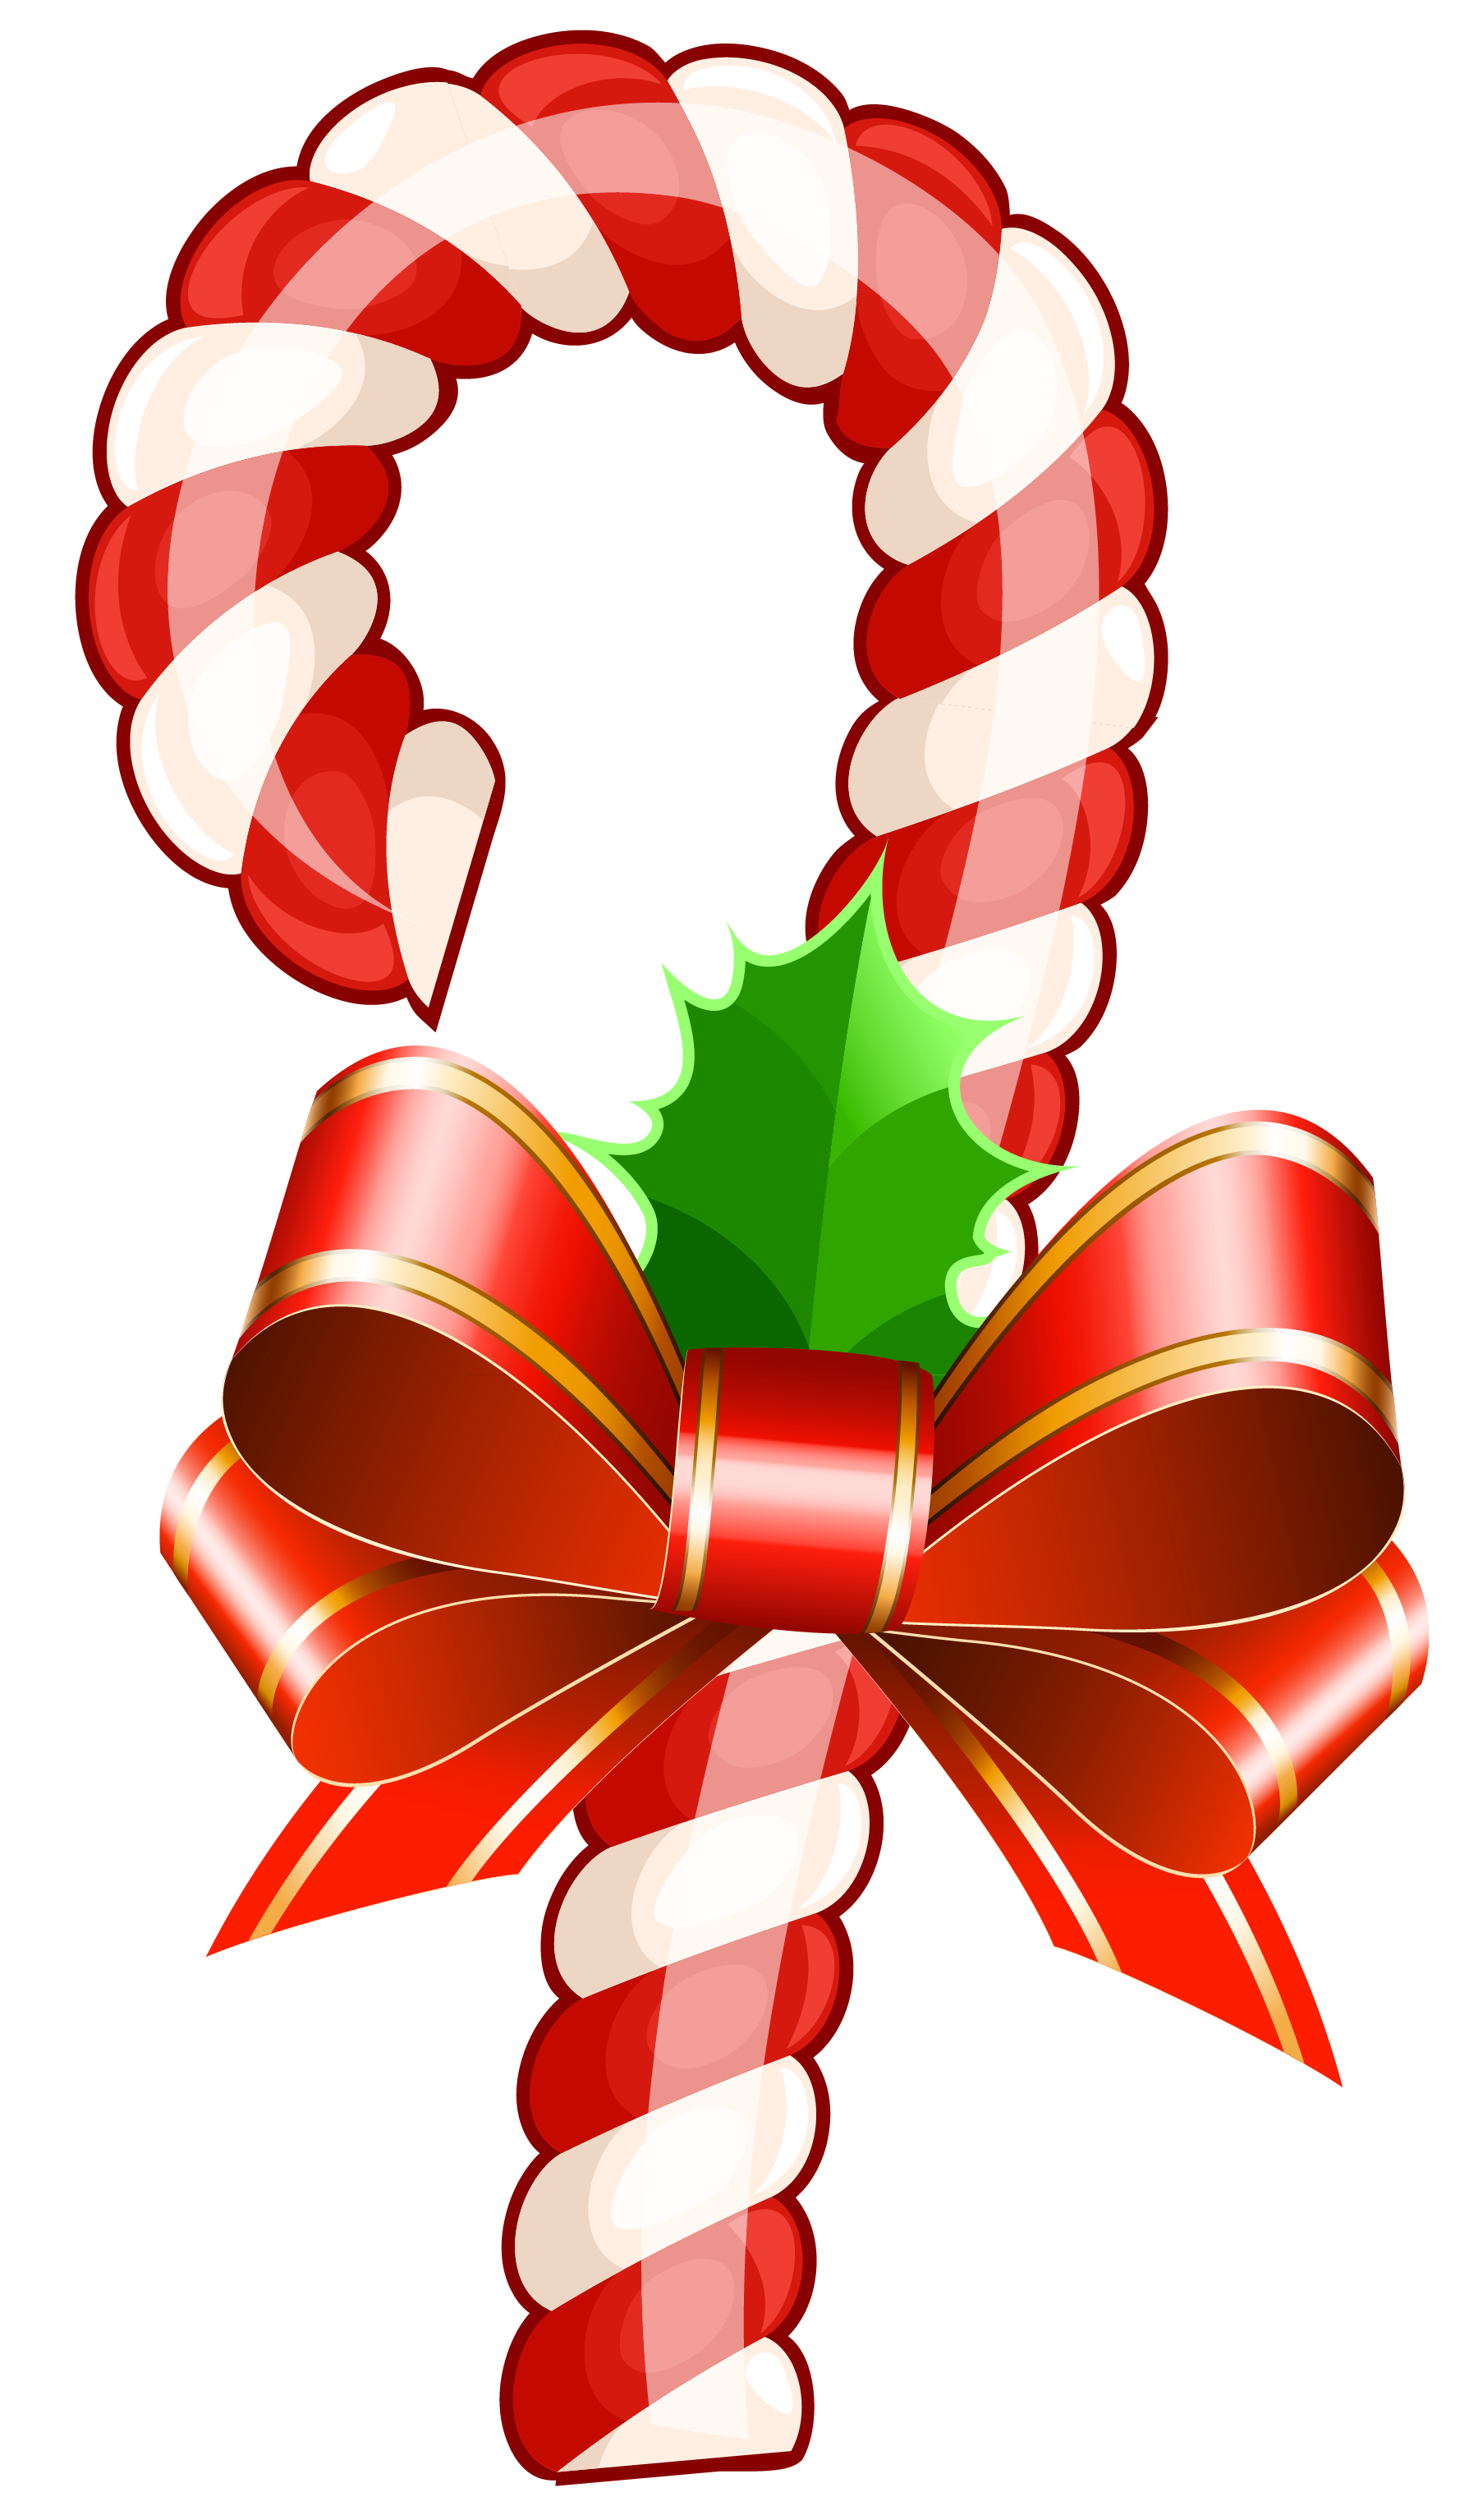 Reindeer clipart candy cane #13